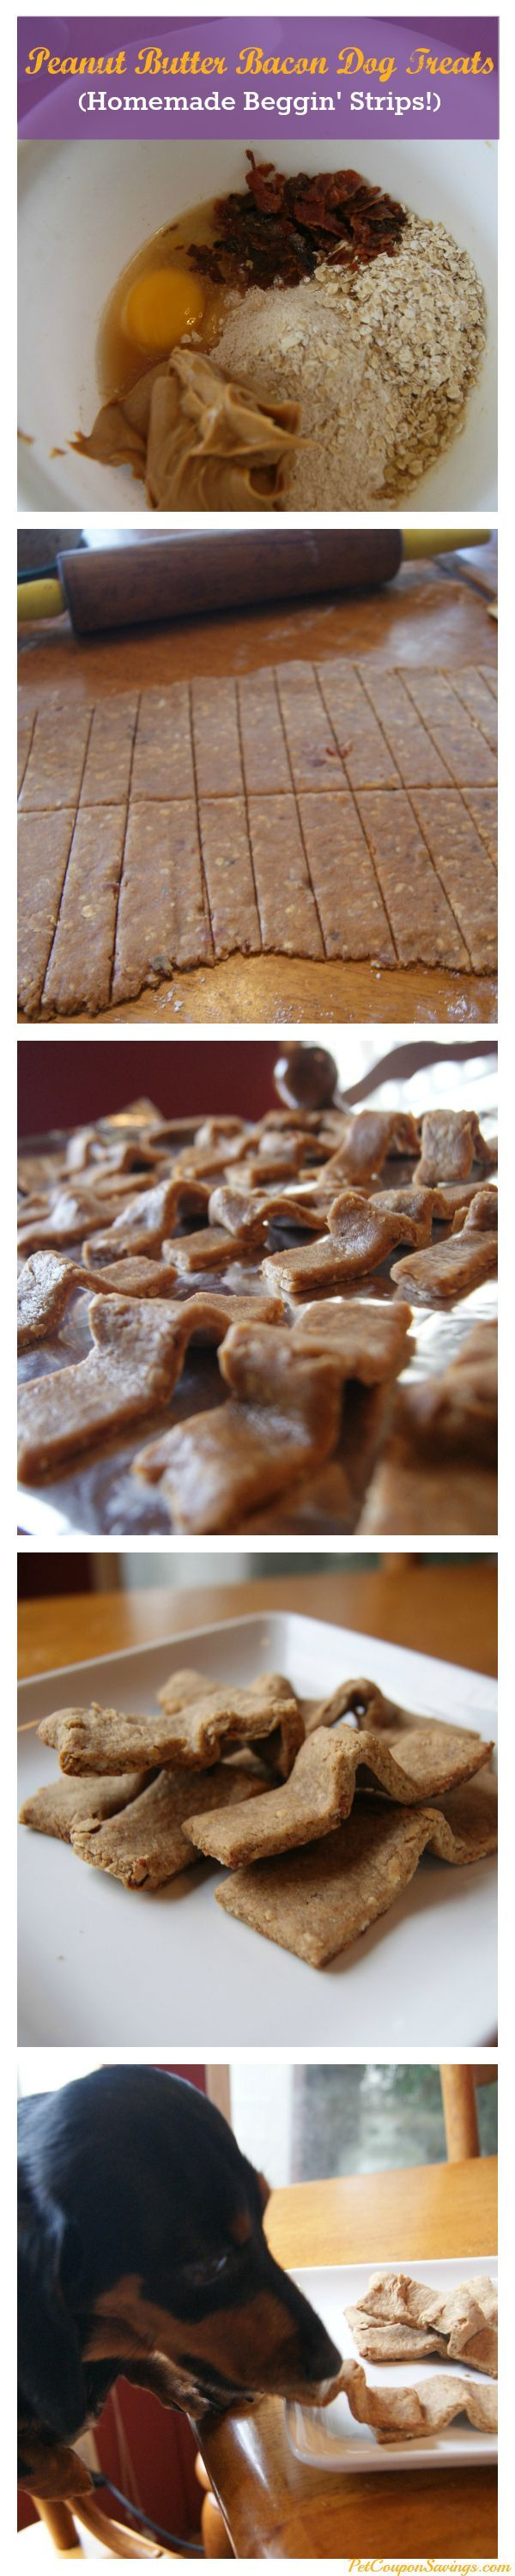 Homemade Peanut Butter Bacon Dog Treats (Homemade Beggin' Strips!) This homemade version has REAL bacon in them. Dogs love it! #homemade #dogs #diy